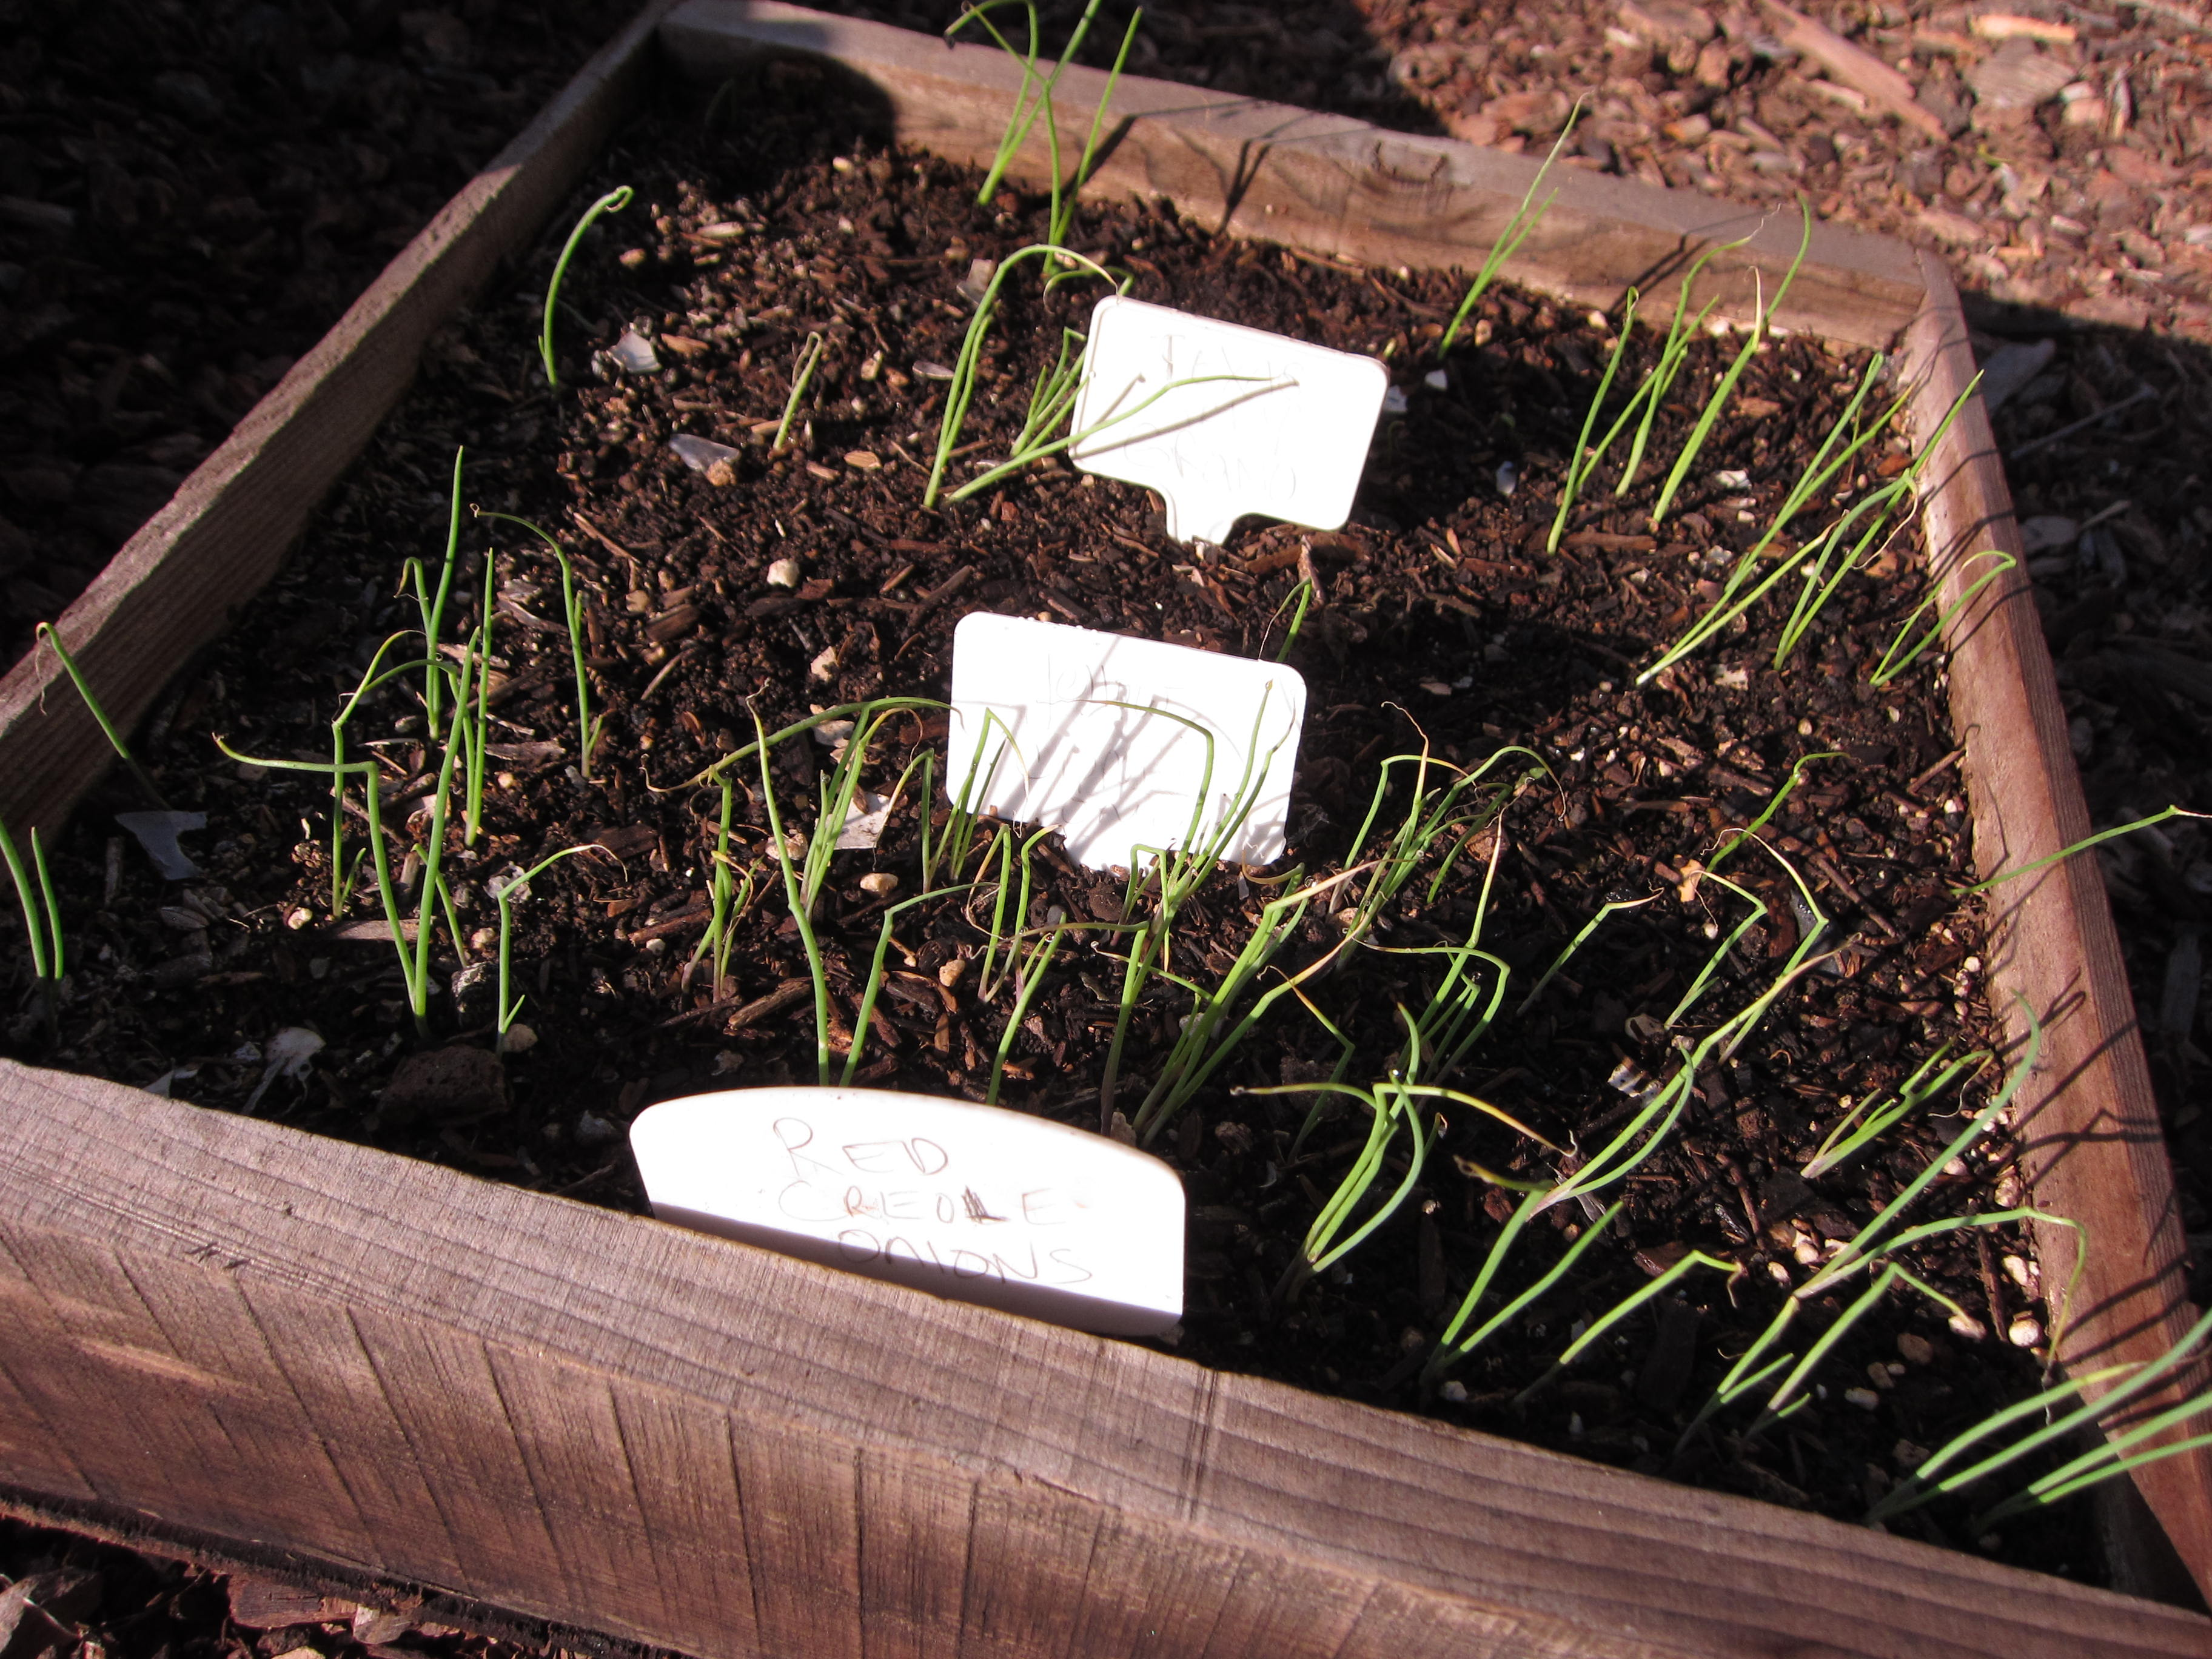 3 types of onions grow in a biointensive seed flat before planting out.